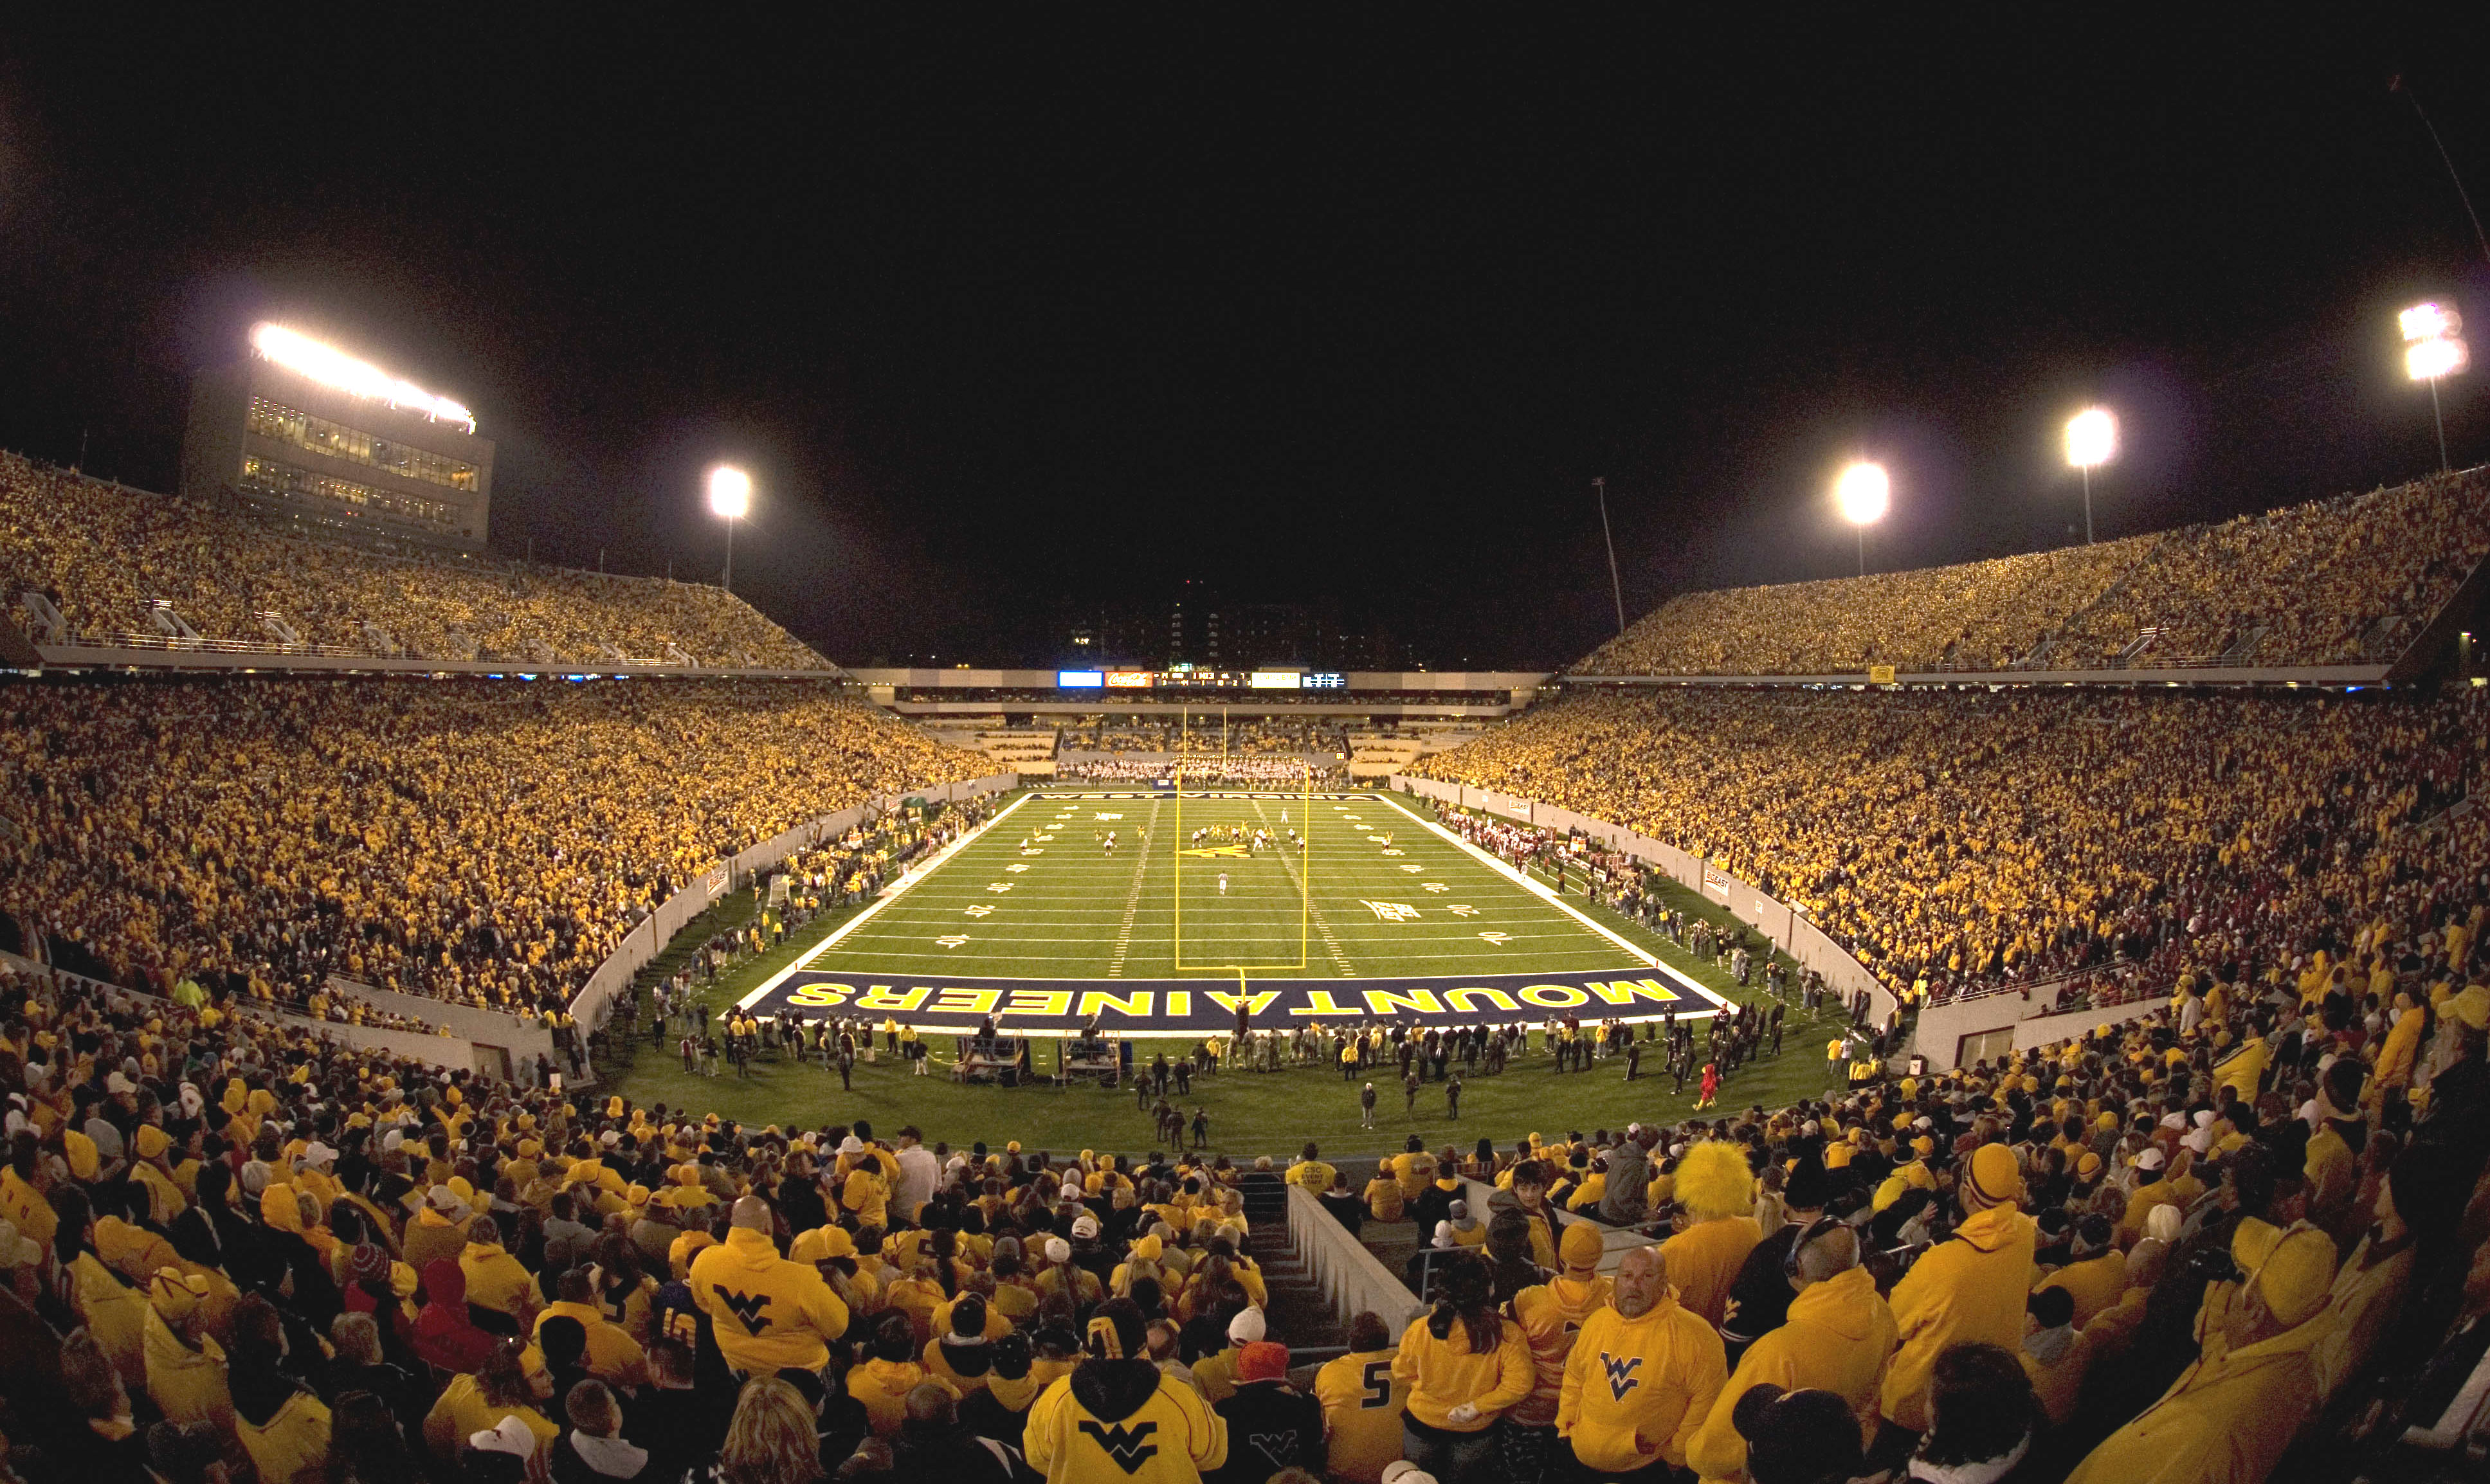 milan puskar stadium15-11-8-07(by m.g. ellis)